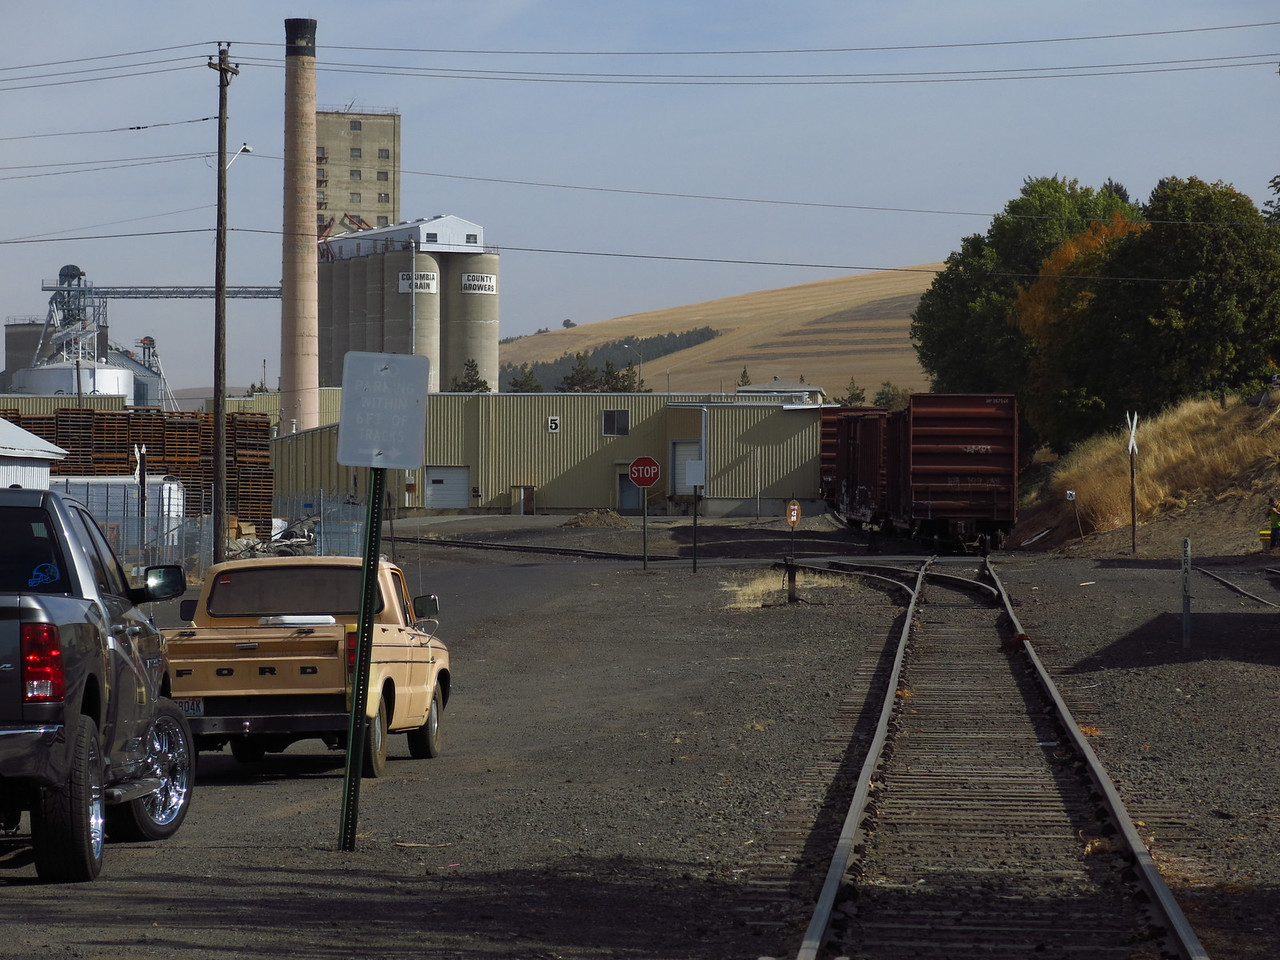 A view of the seed processing plant, which sits east of the depot in Dayton.